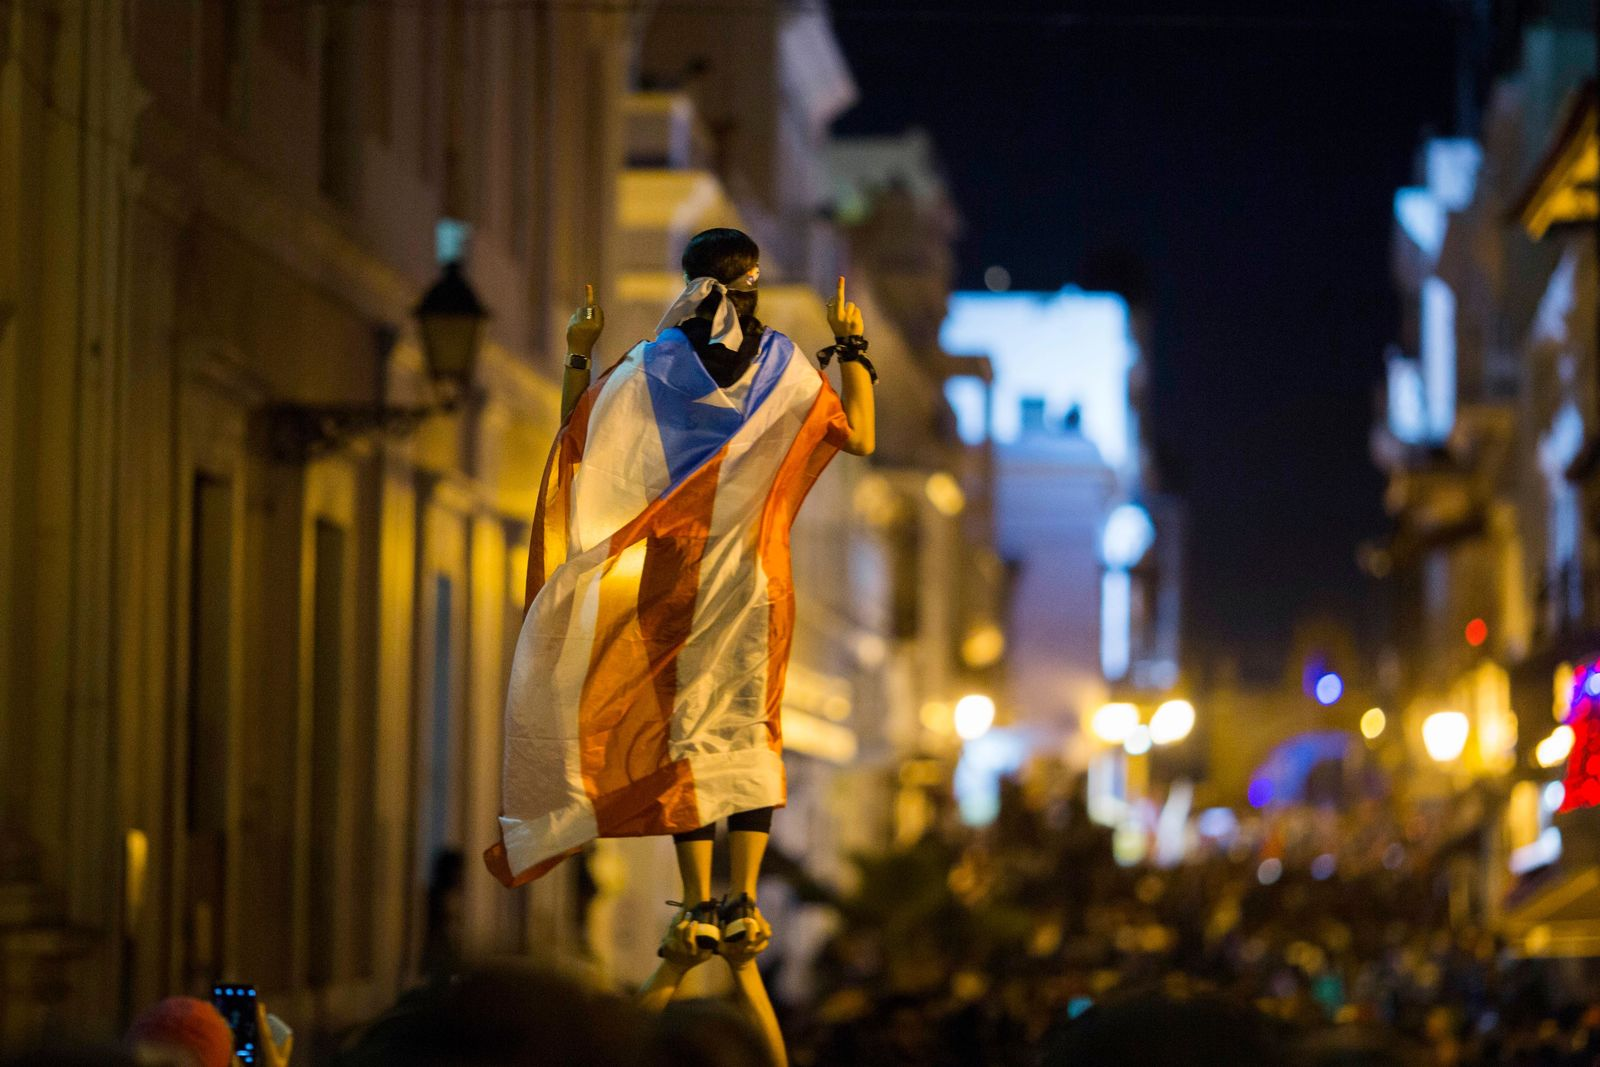 In this Wednesday, July 17, 2019 photo, a demonstrator with a Puerto Rican flag draped over his shoulders balances on the hands of another during clashes in San Juan, Puerto Rico. Thousands of people marched to the governor's residence in San Juan on Wednesday chanting demands for Gov. Ricardo Rossello to resign after the leak of online chats that show him making misogynistic slurs and mocking his constituents. (AP Photo/Dennis M. Rivera Pichardo)